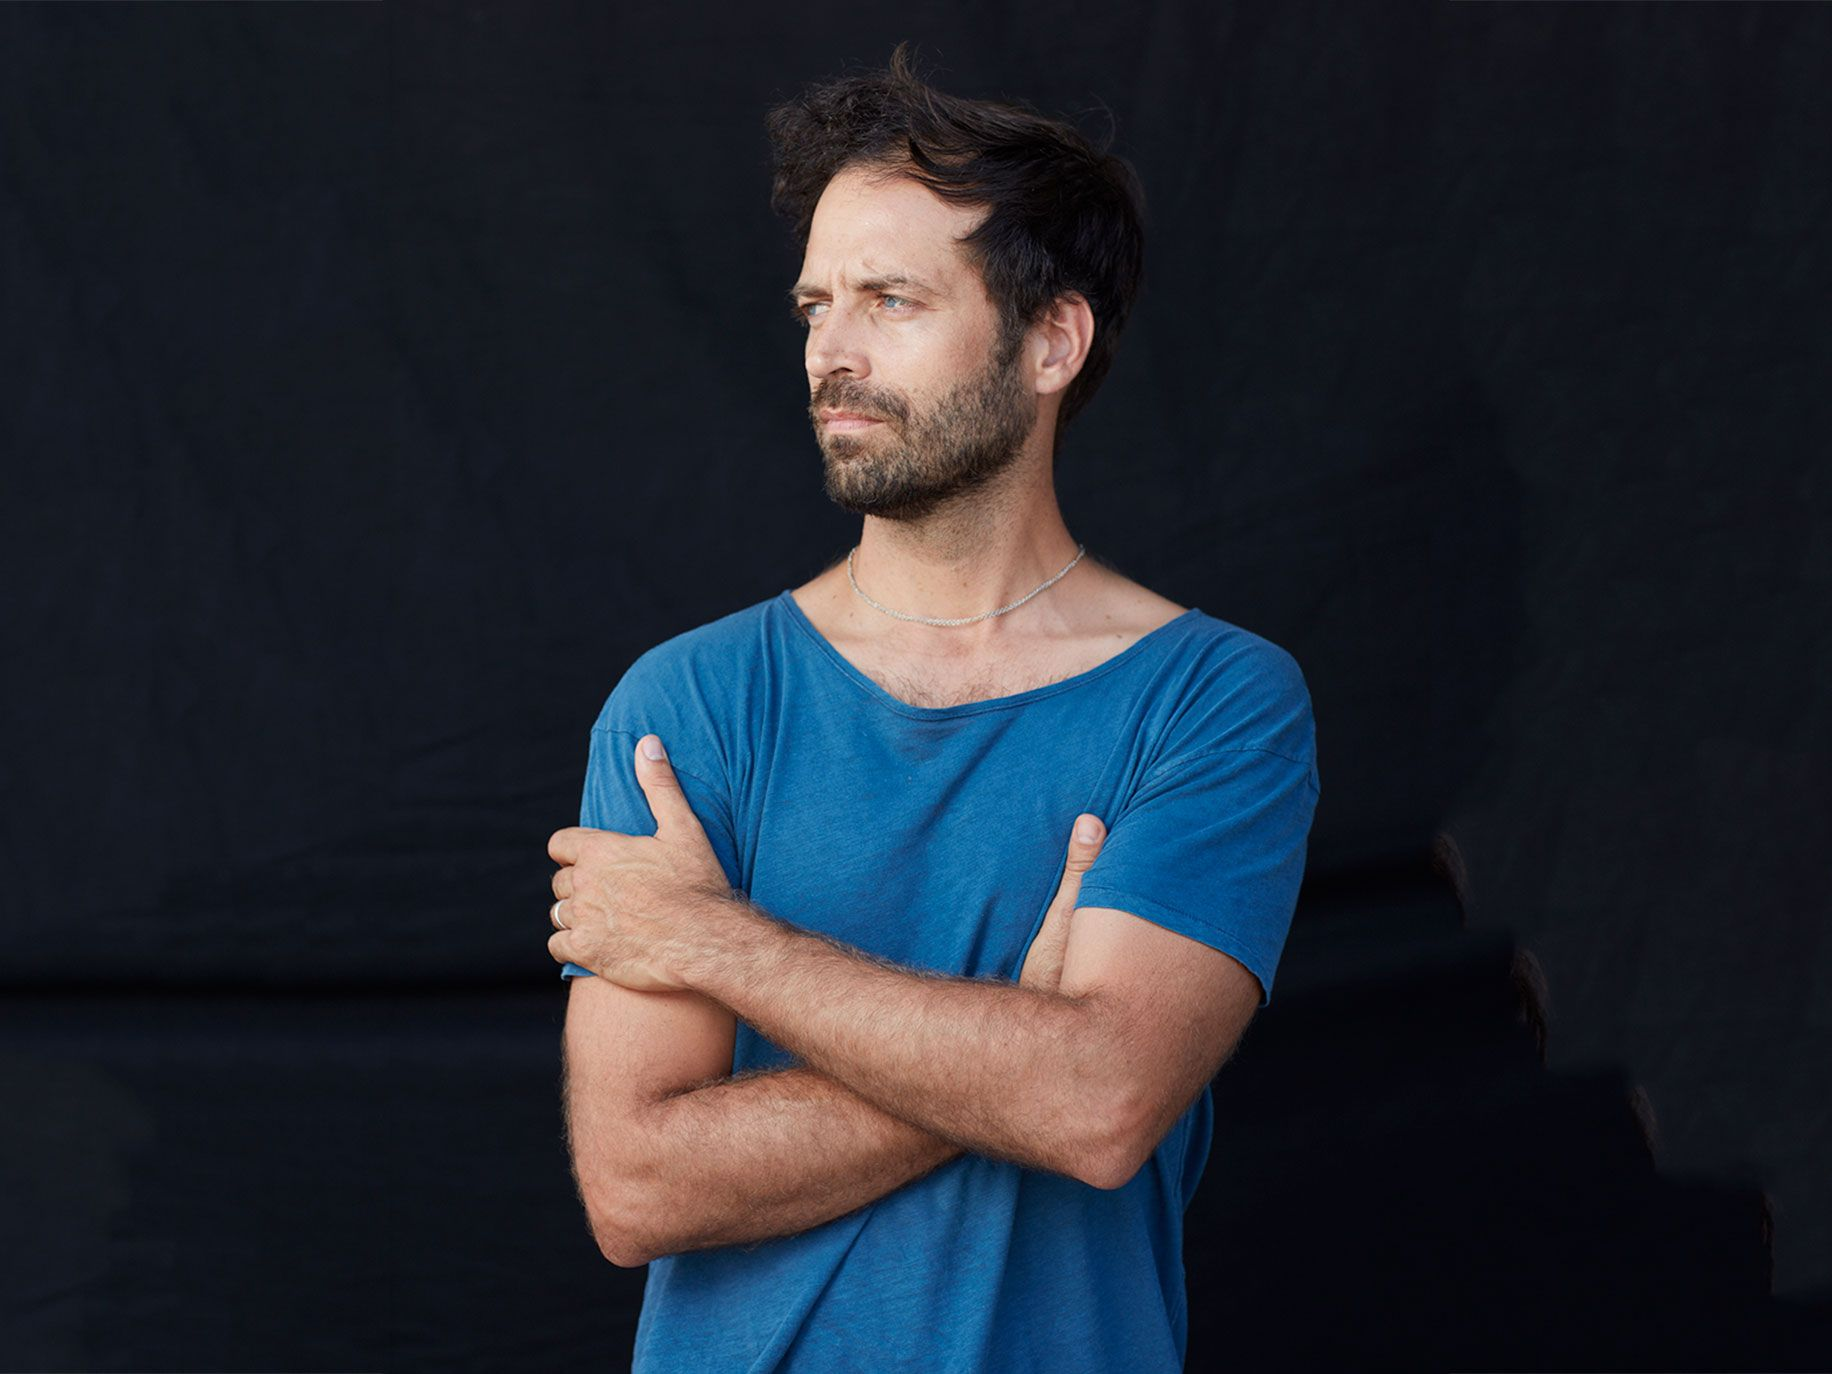 L.A. Dance Project artistic director Benjamin Millepied joined the company in 2012.